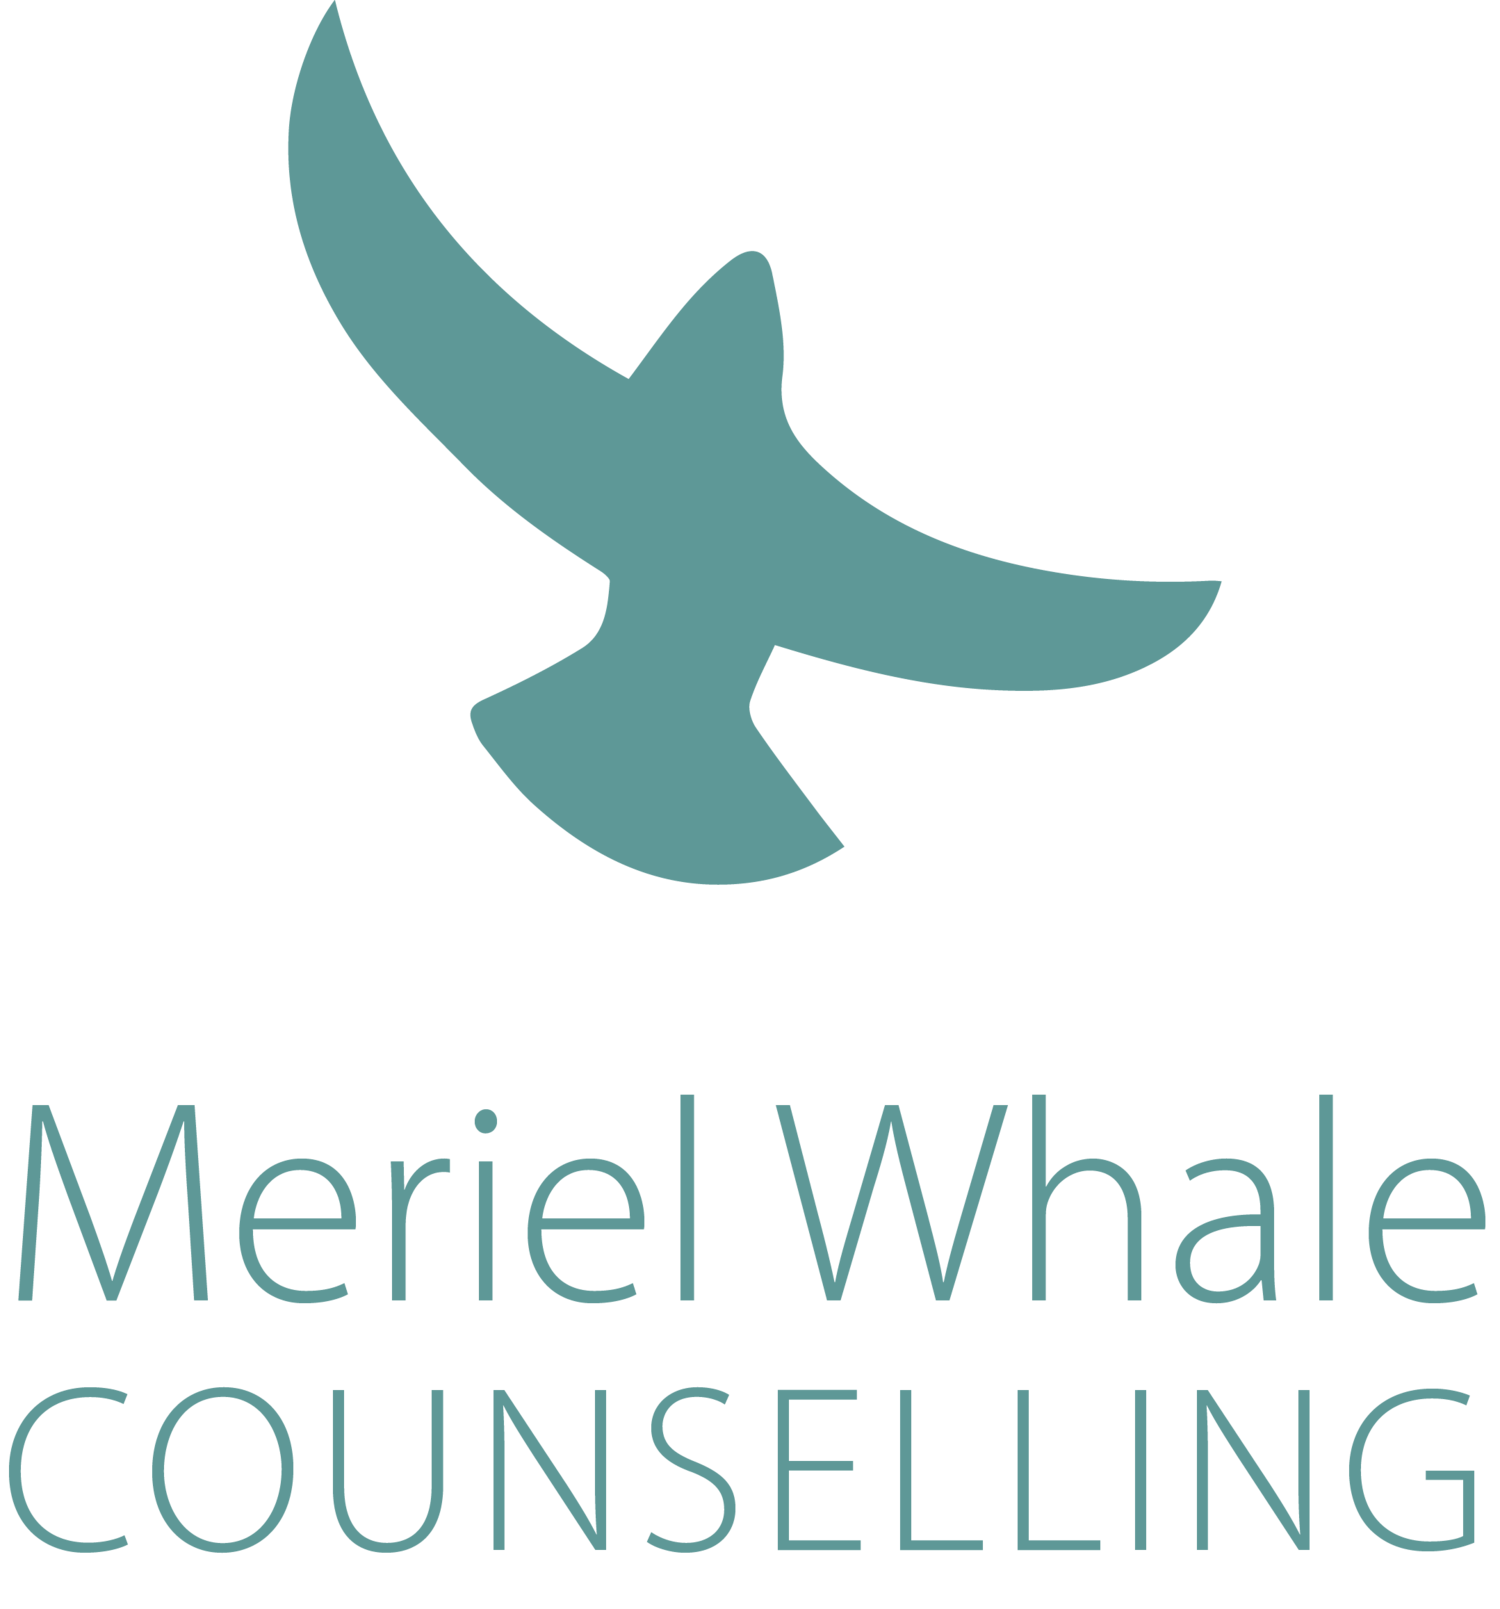 Meriel Whale Counselling